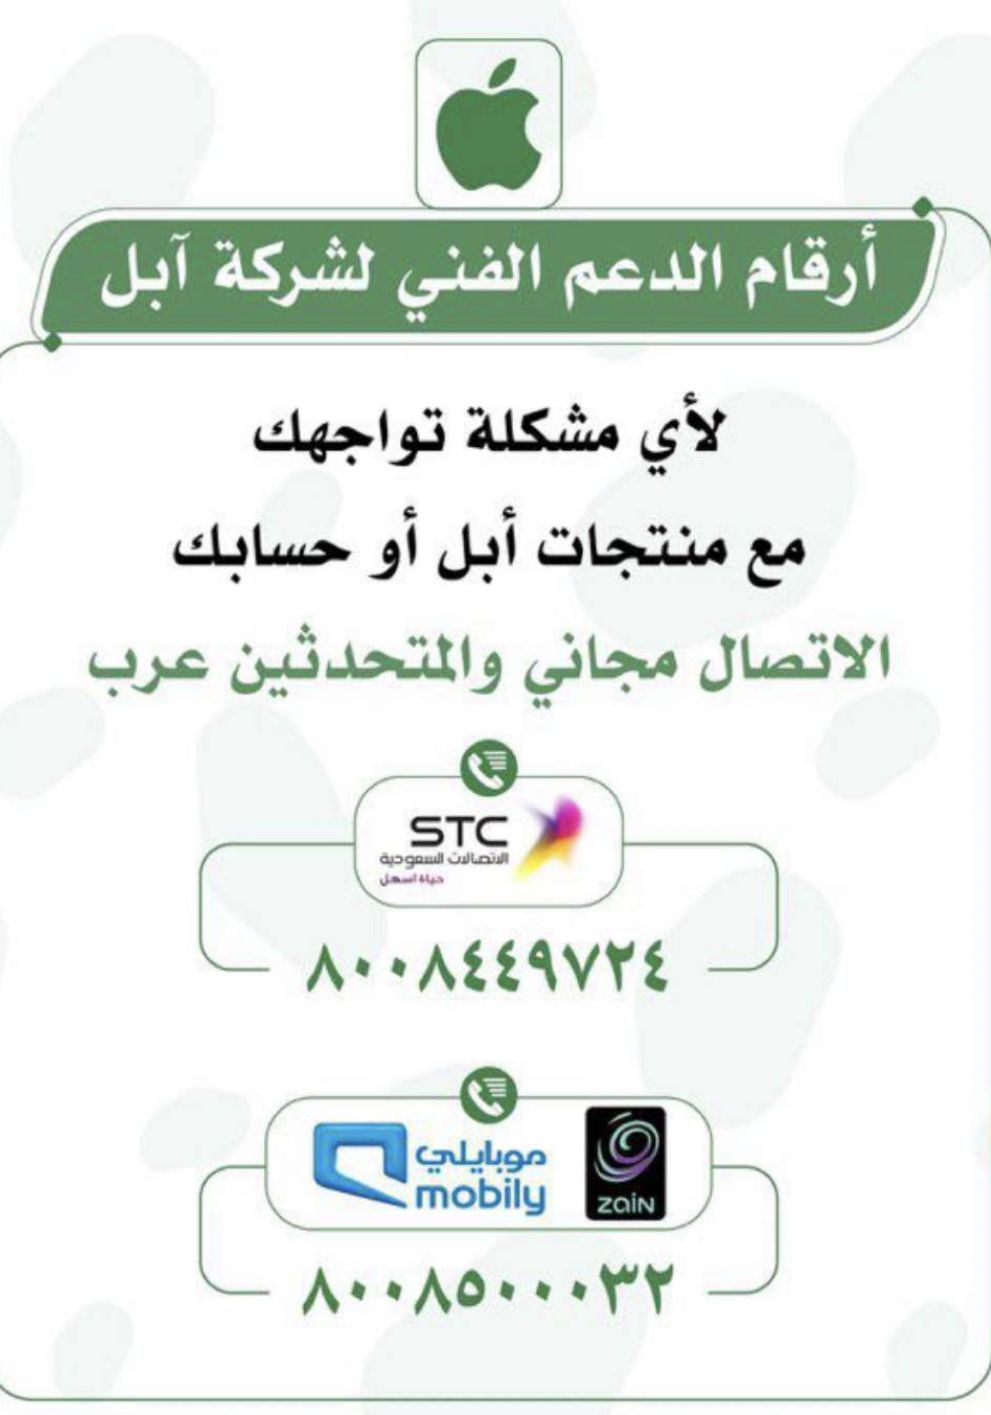 Pin By Salma On Saudi Banther Iphone App Layout App Layout Iphone Apps